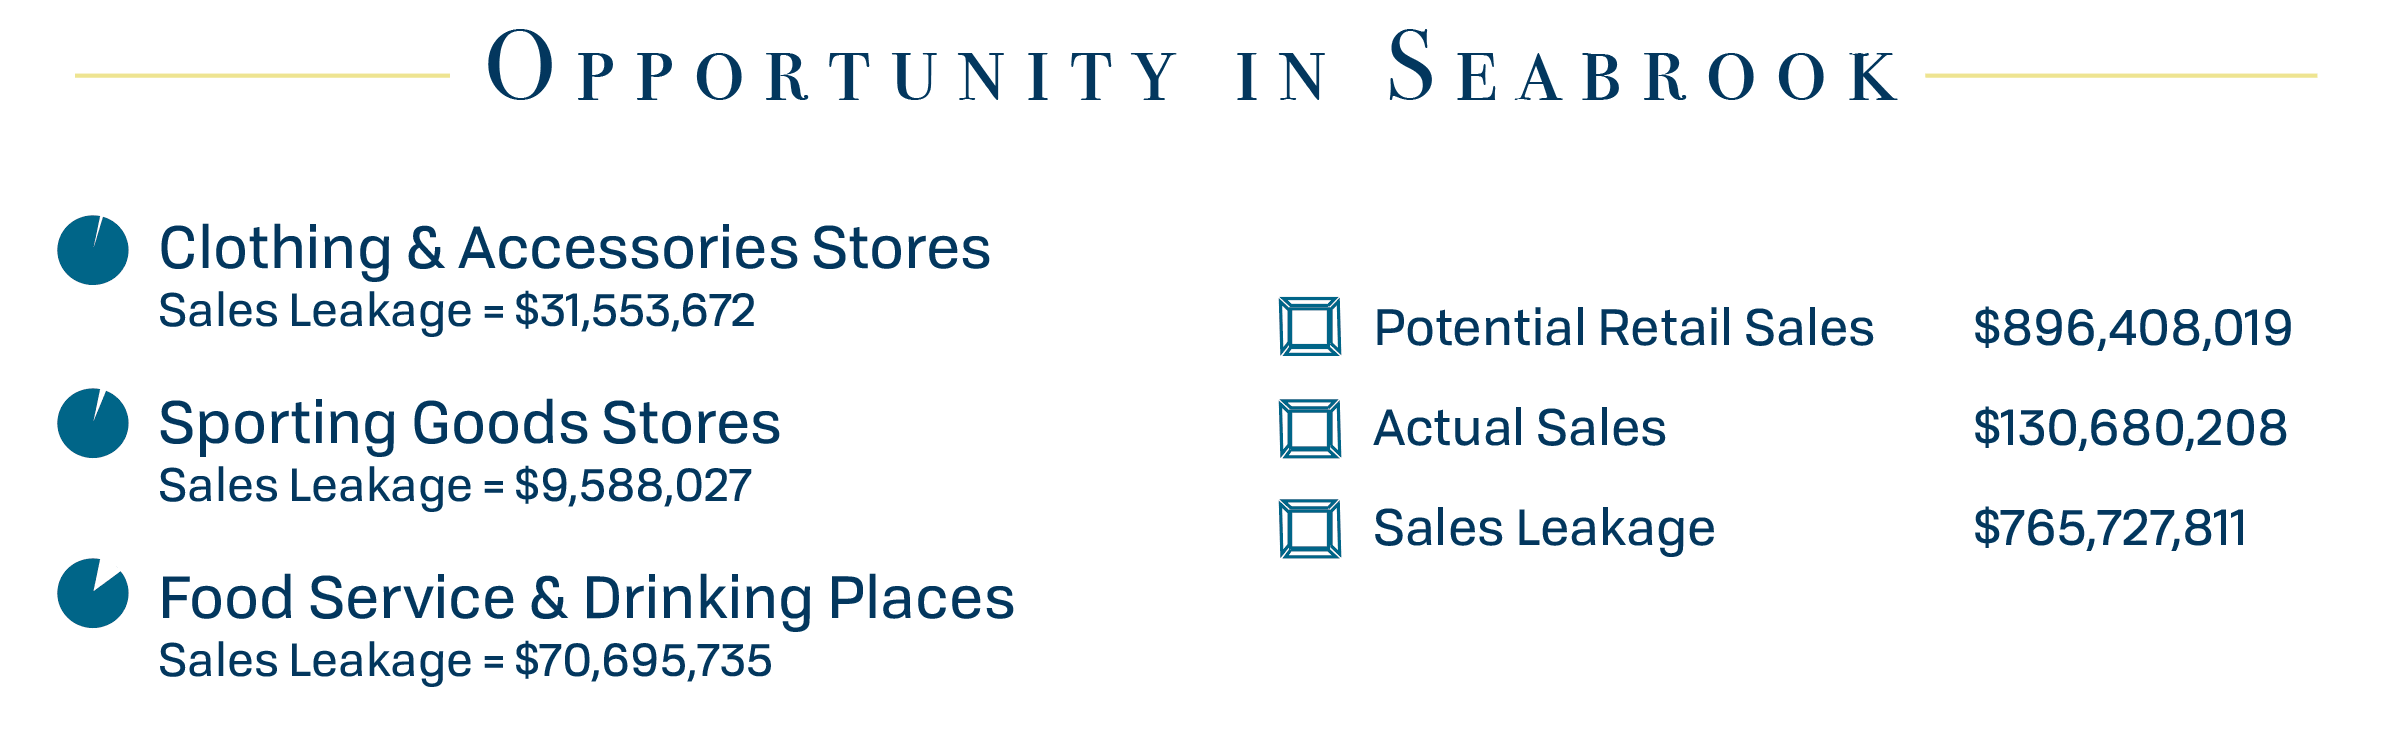 Opportunity in Seabrook